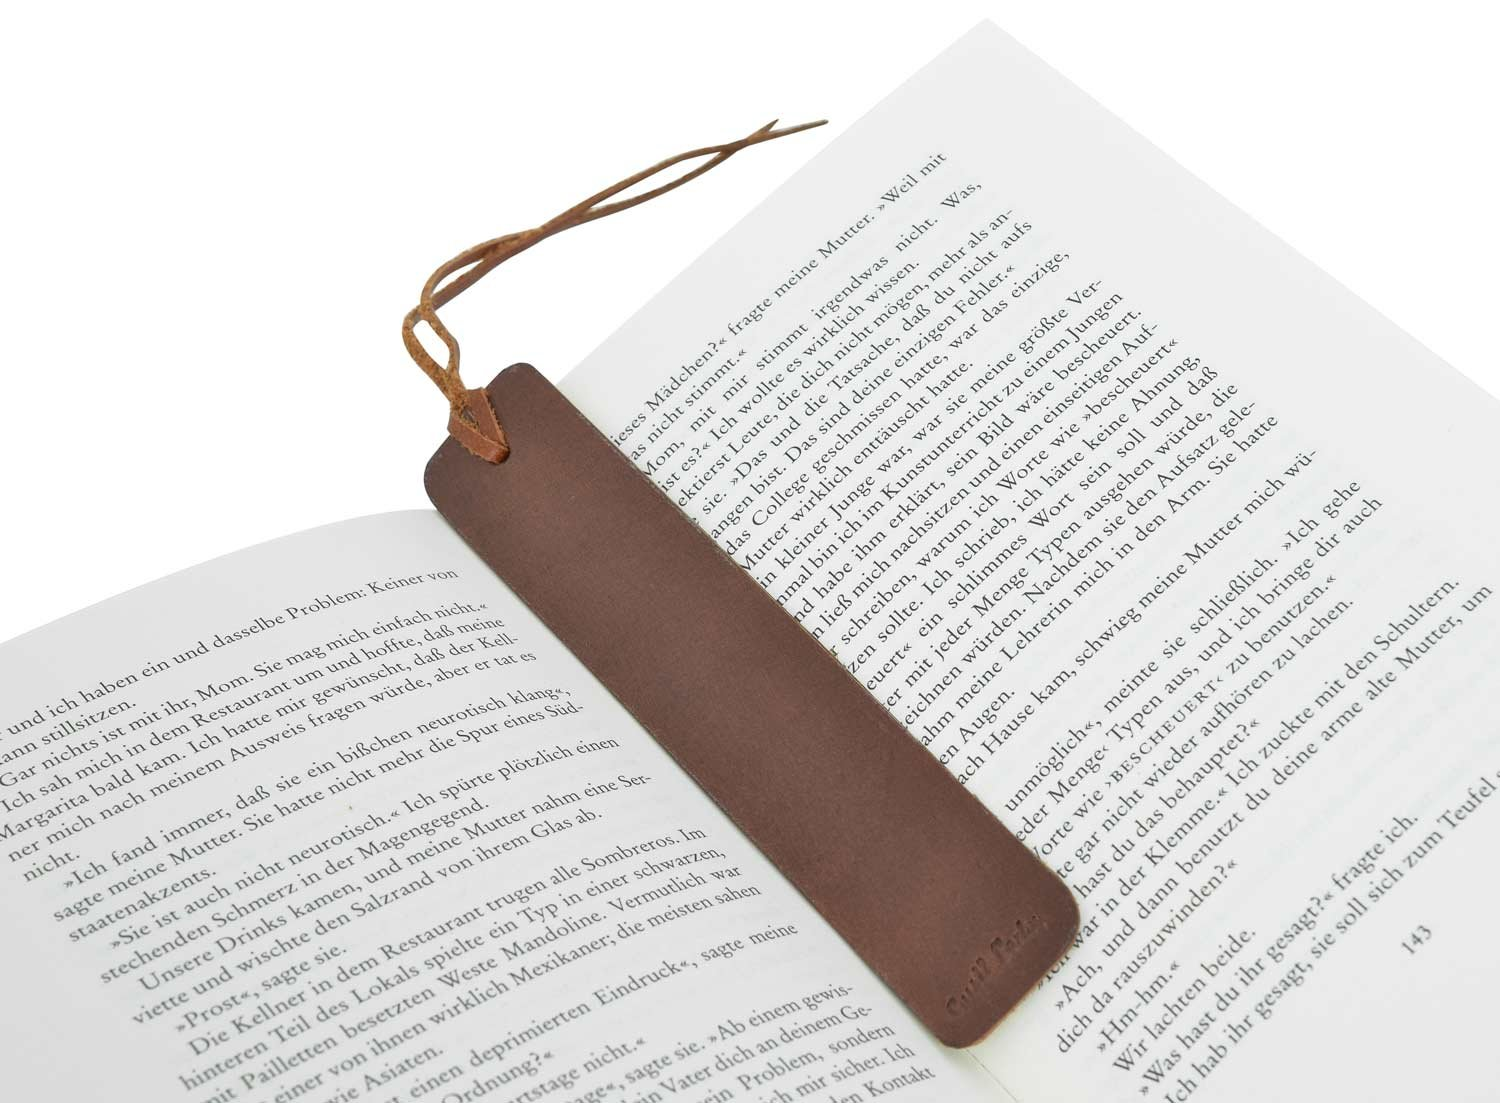 'Gusti Leather Studio Cort Bookmark GL 2 A168 einheitsgröße Brown GL_2A168-24-19